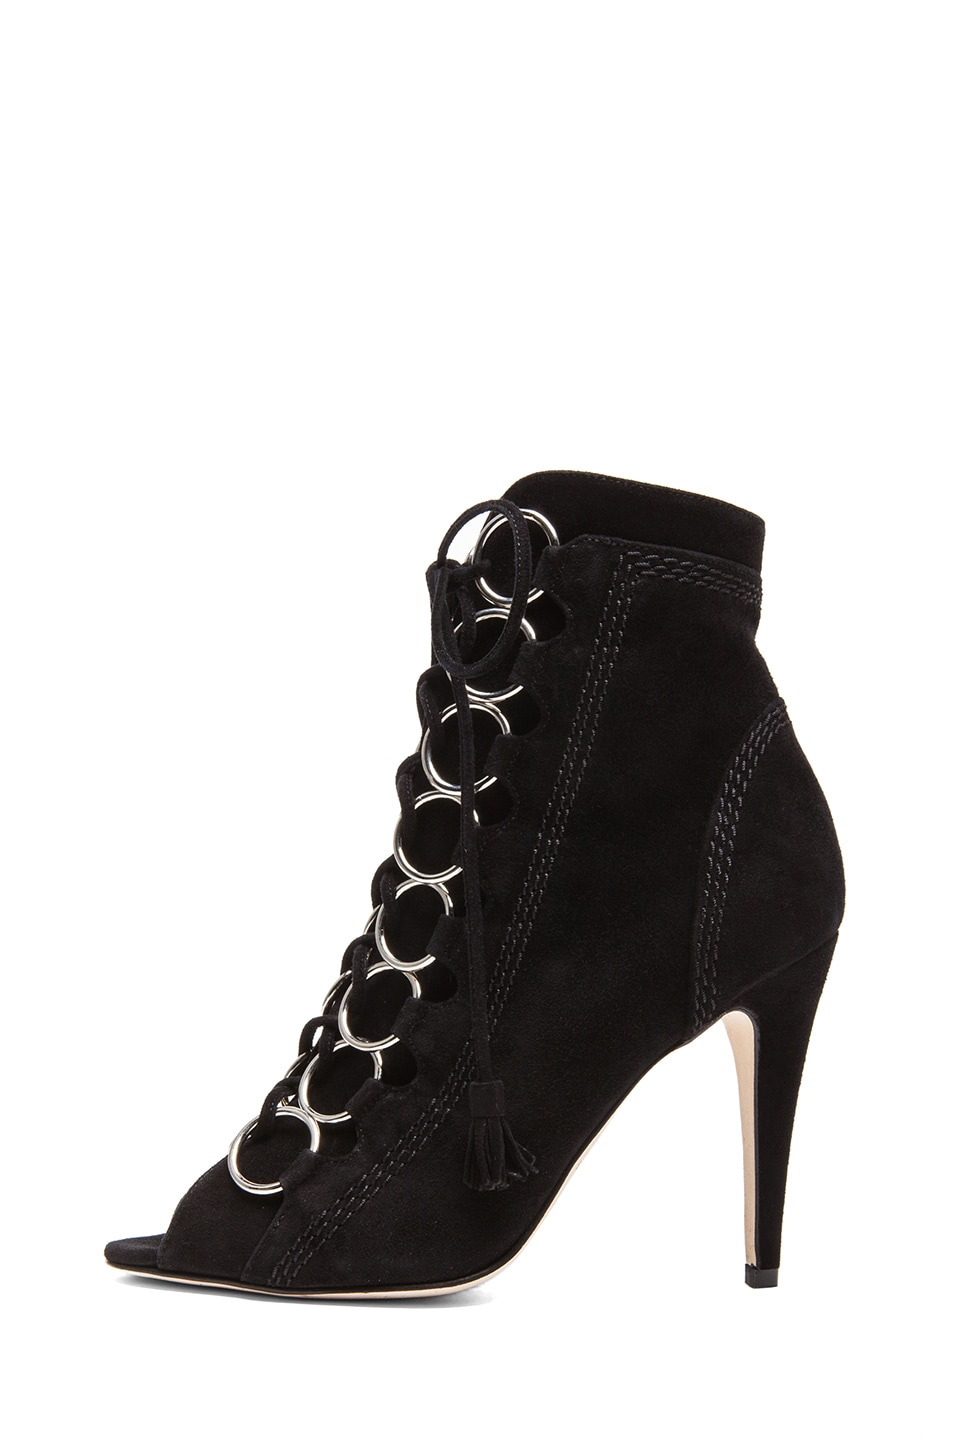 Image 1 of Brian Atwood Adele Suede Lace Up Booties in Black